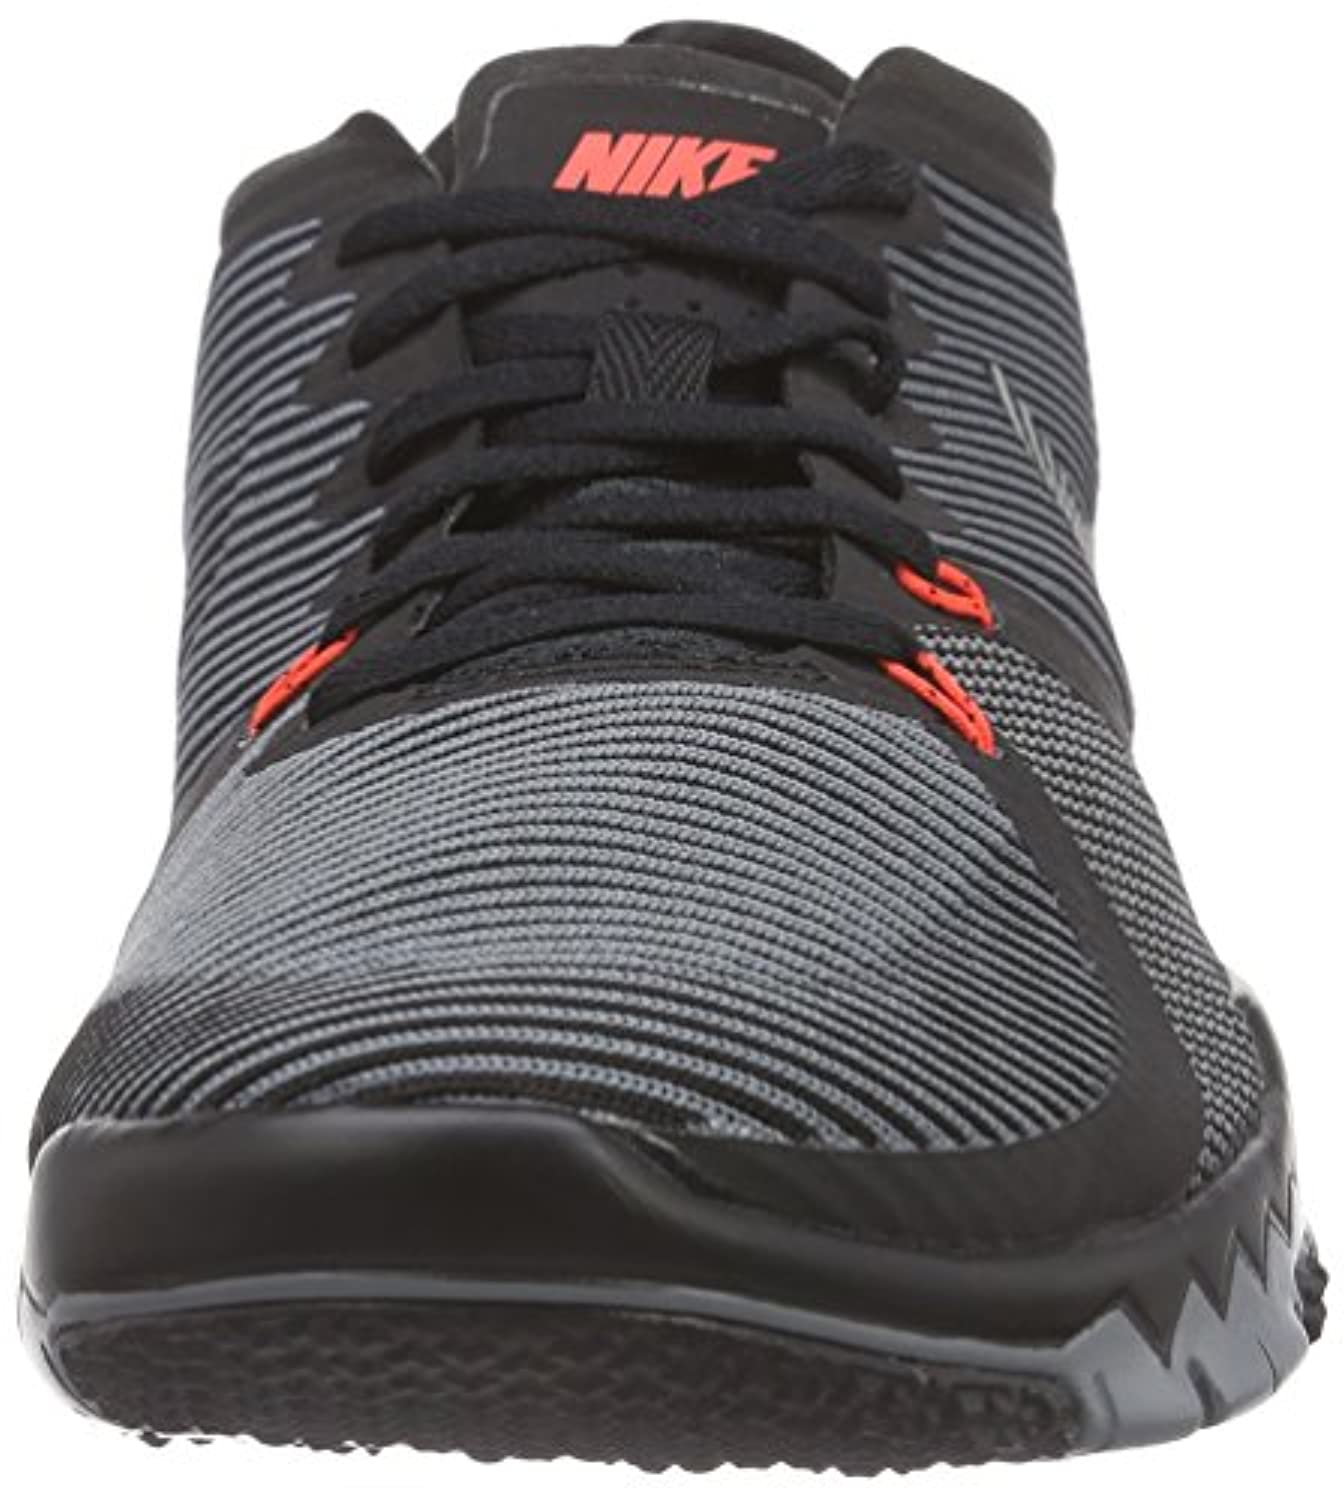 603d7a07940ce ... Nike Mens Free Trainer 3.0 V4 Training Shoes Black Cool Grey 749361-001  Size ...